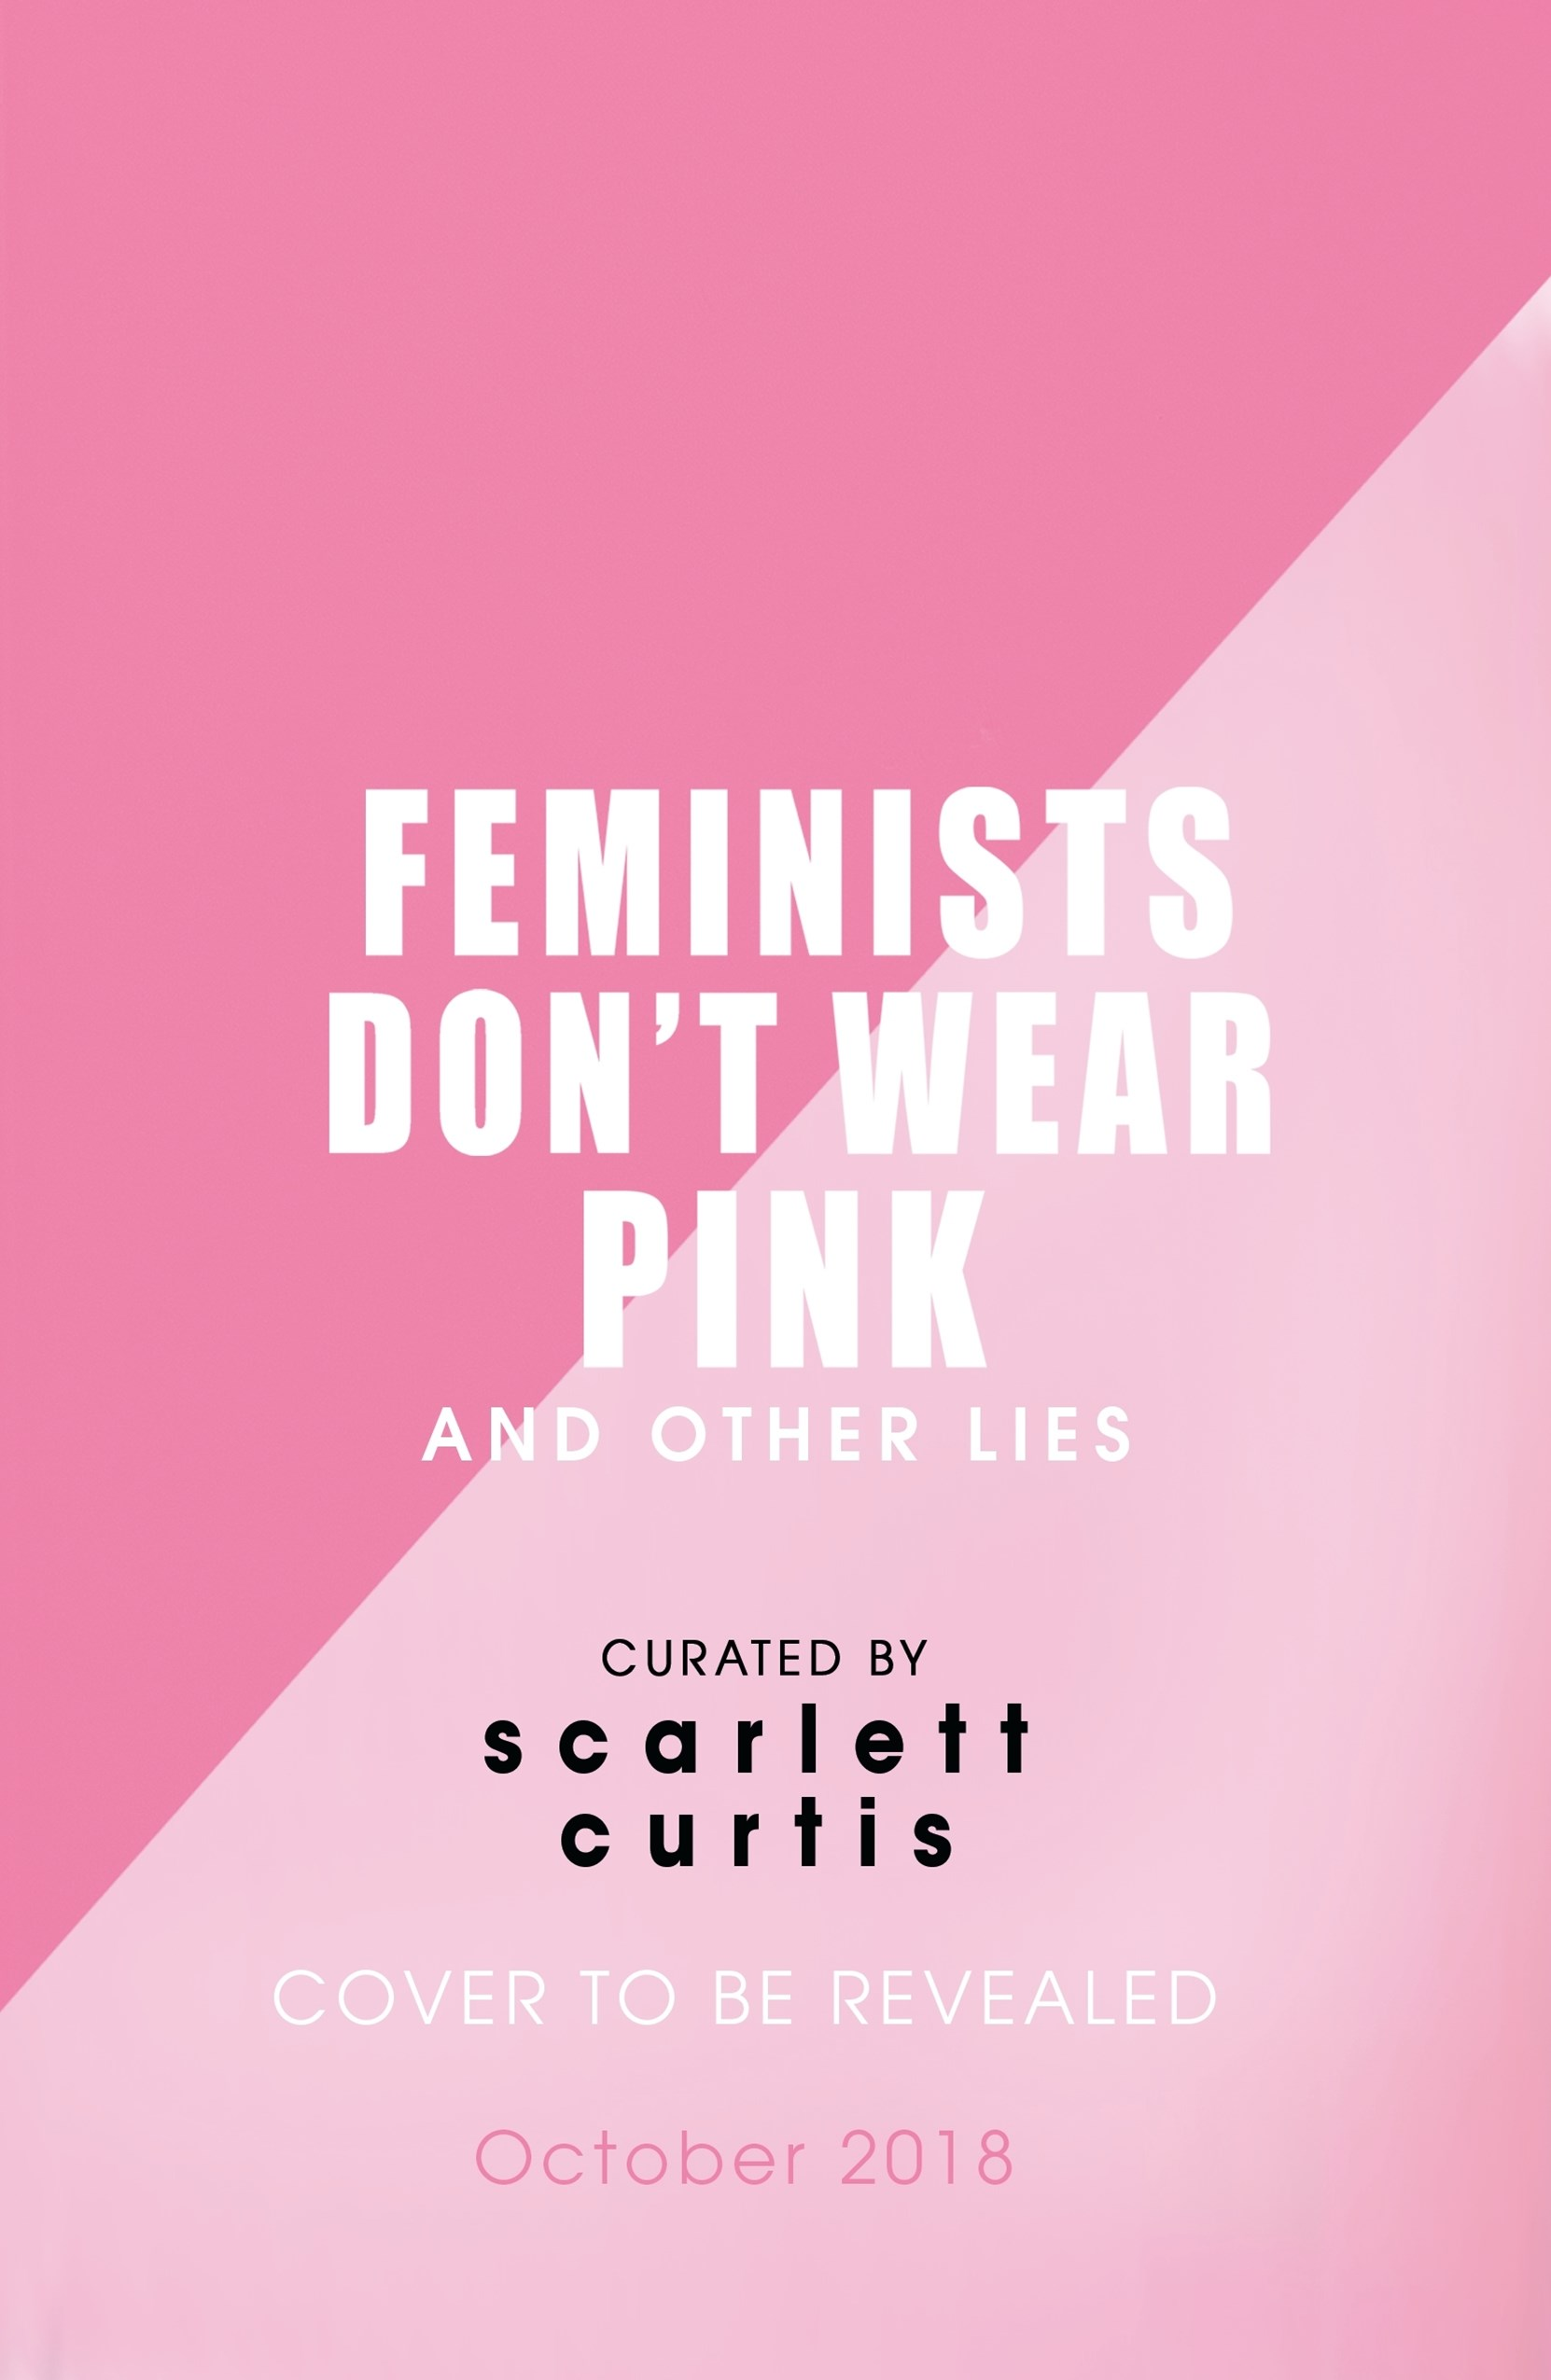 Feminists Don't Wear Pink (and other lies): A charitable anthology